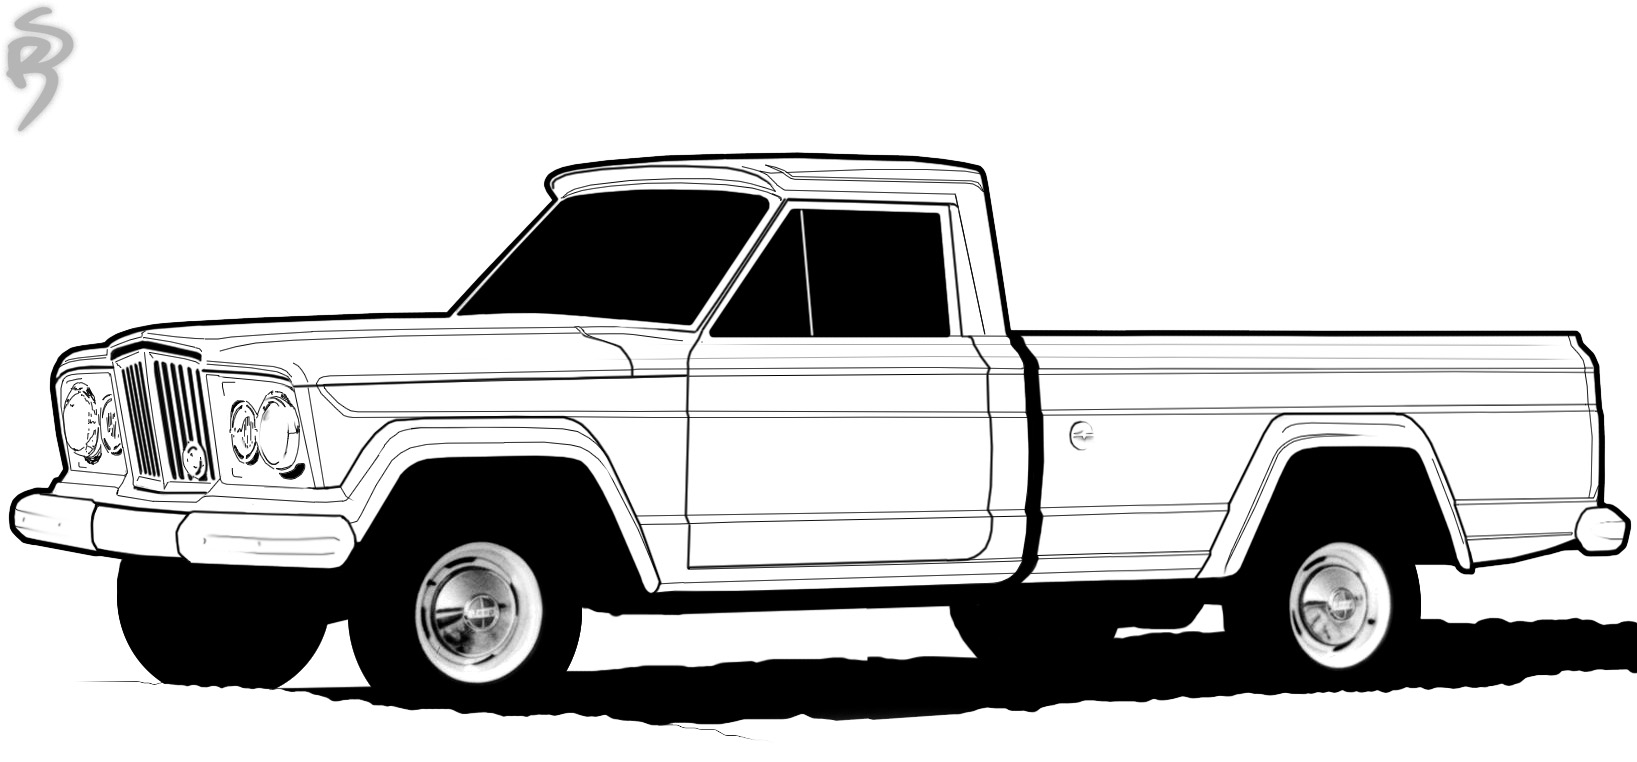 Free Chevy Truck Cliparts, Download Free Clip Art, Free Clip Art ... | 762x1637